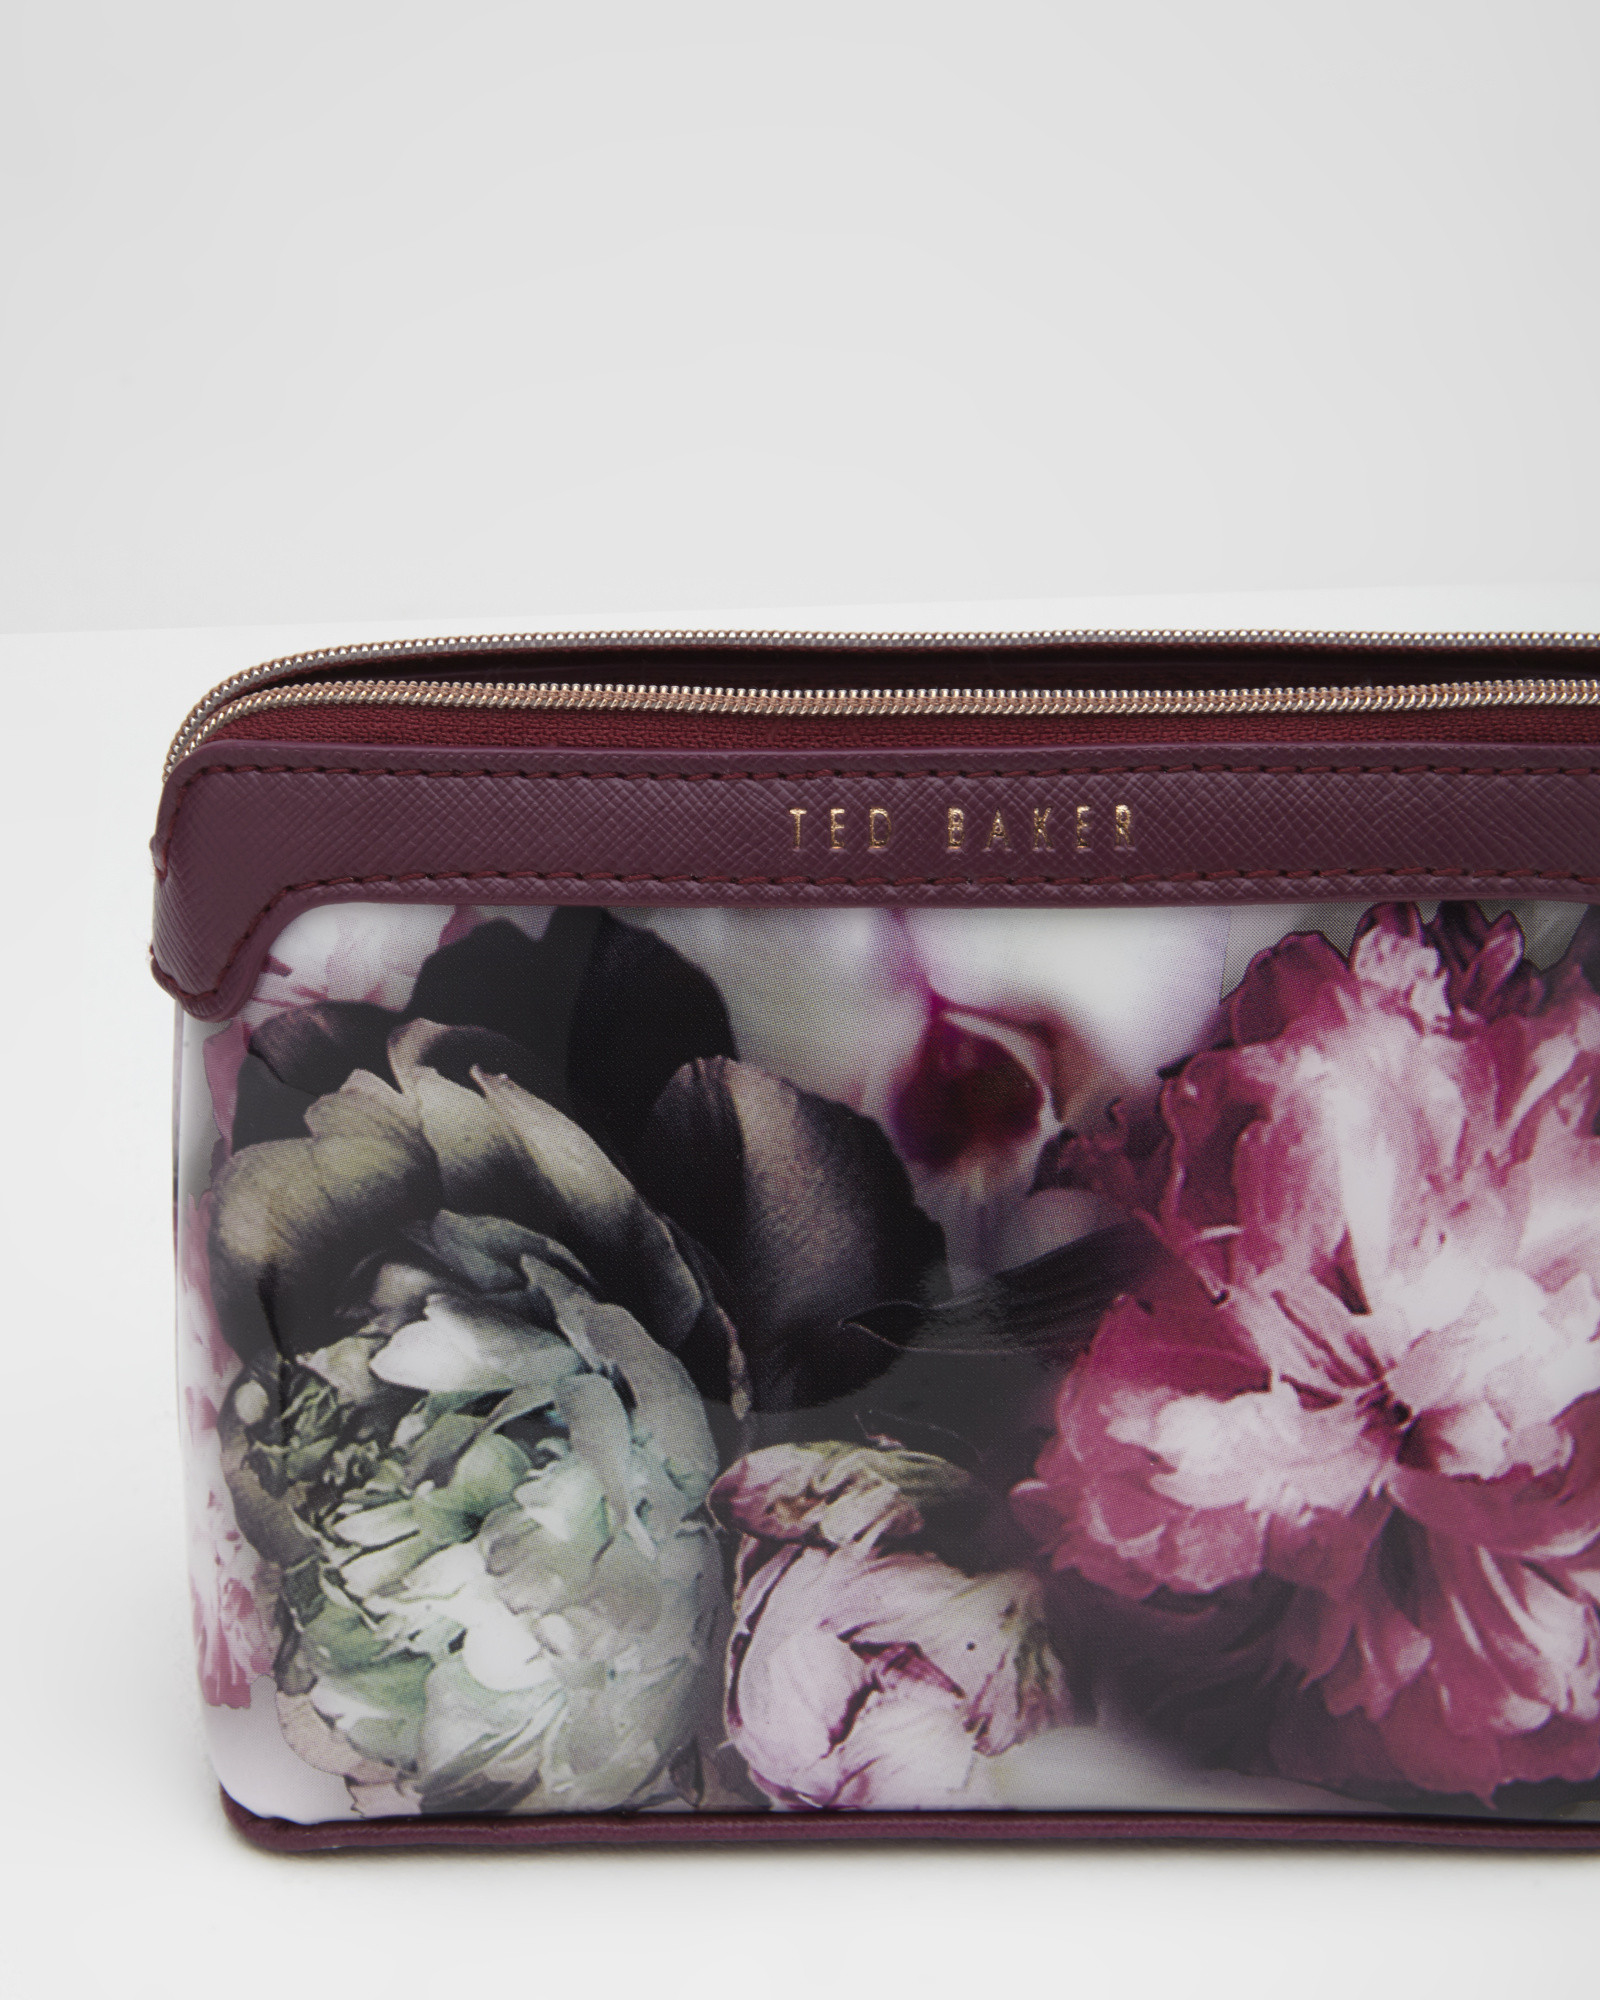 cb78bc6c08b7 Lyst - Ted Baker Ethereal Posie Makeup Bag in Purple